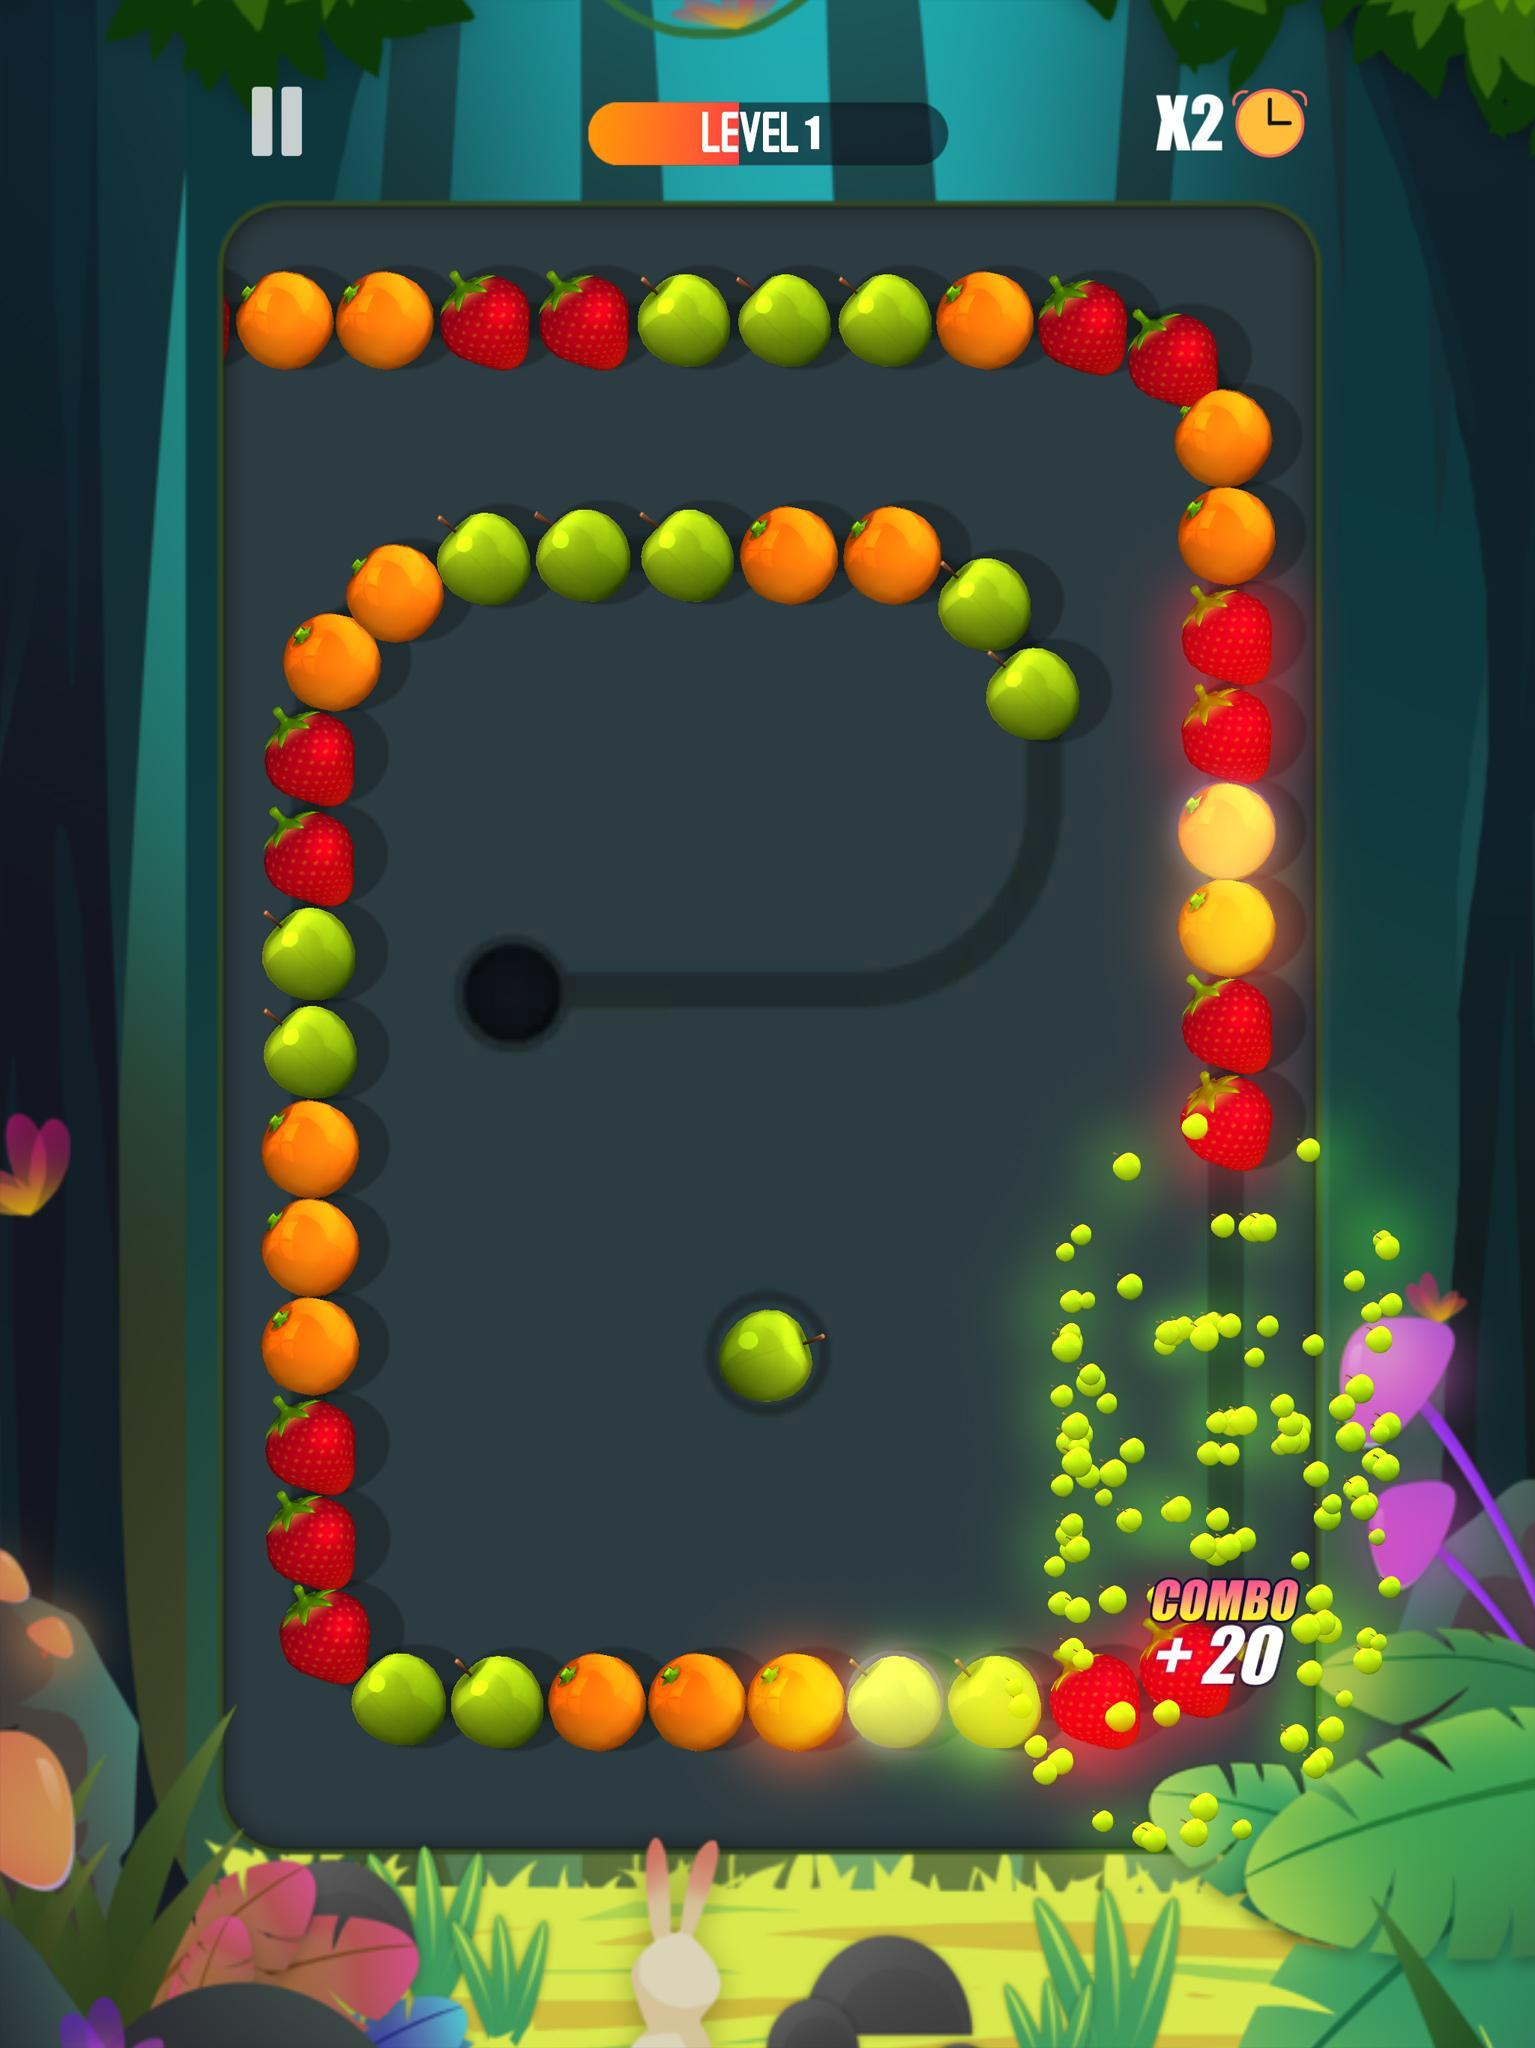 Marble Blast Gold for Android - APK Download